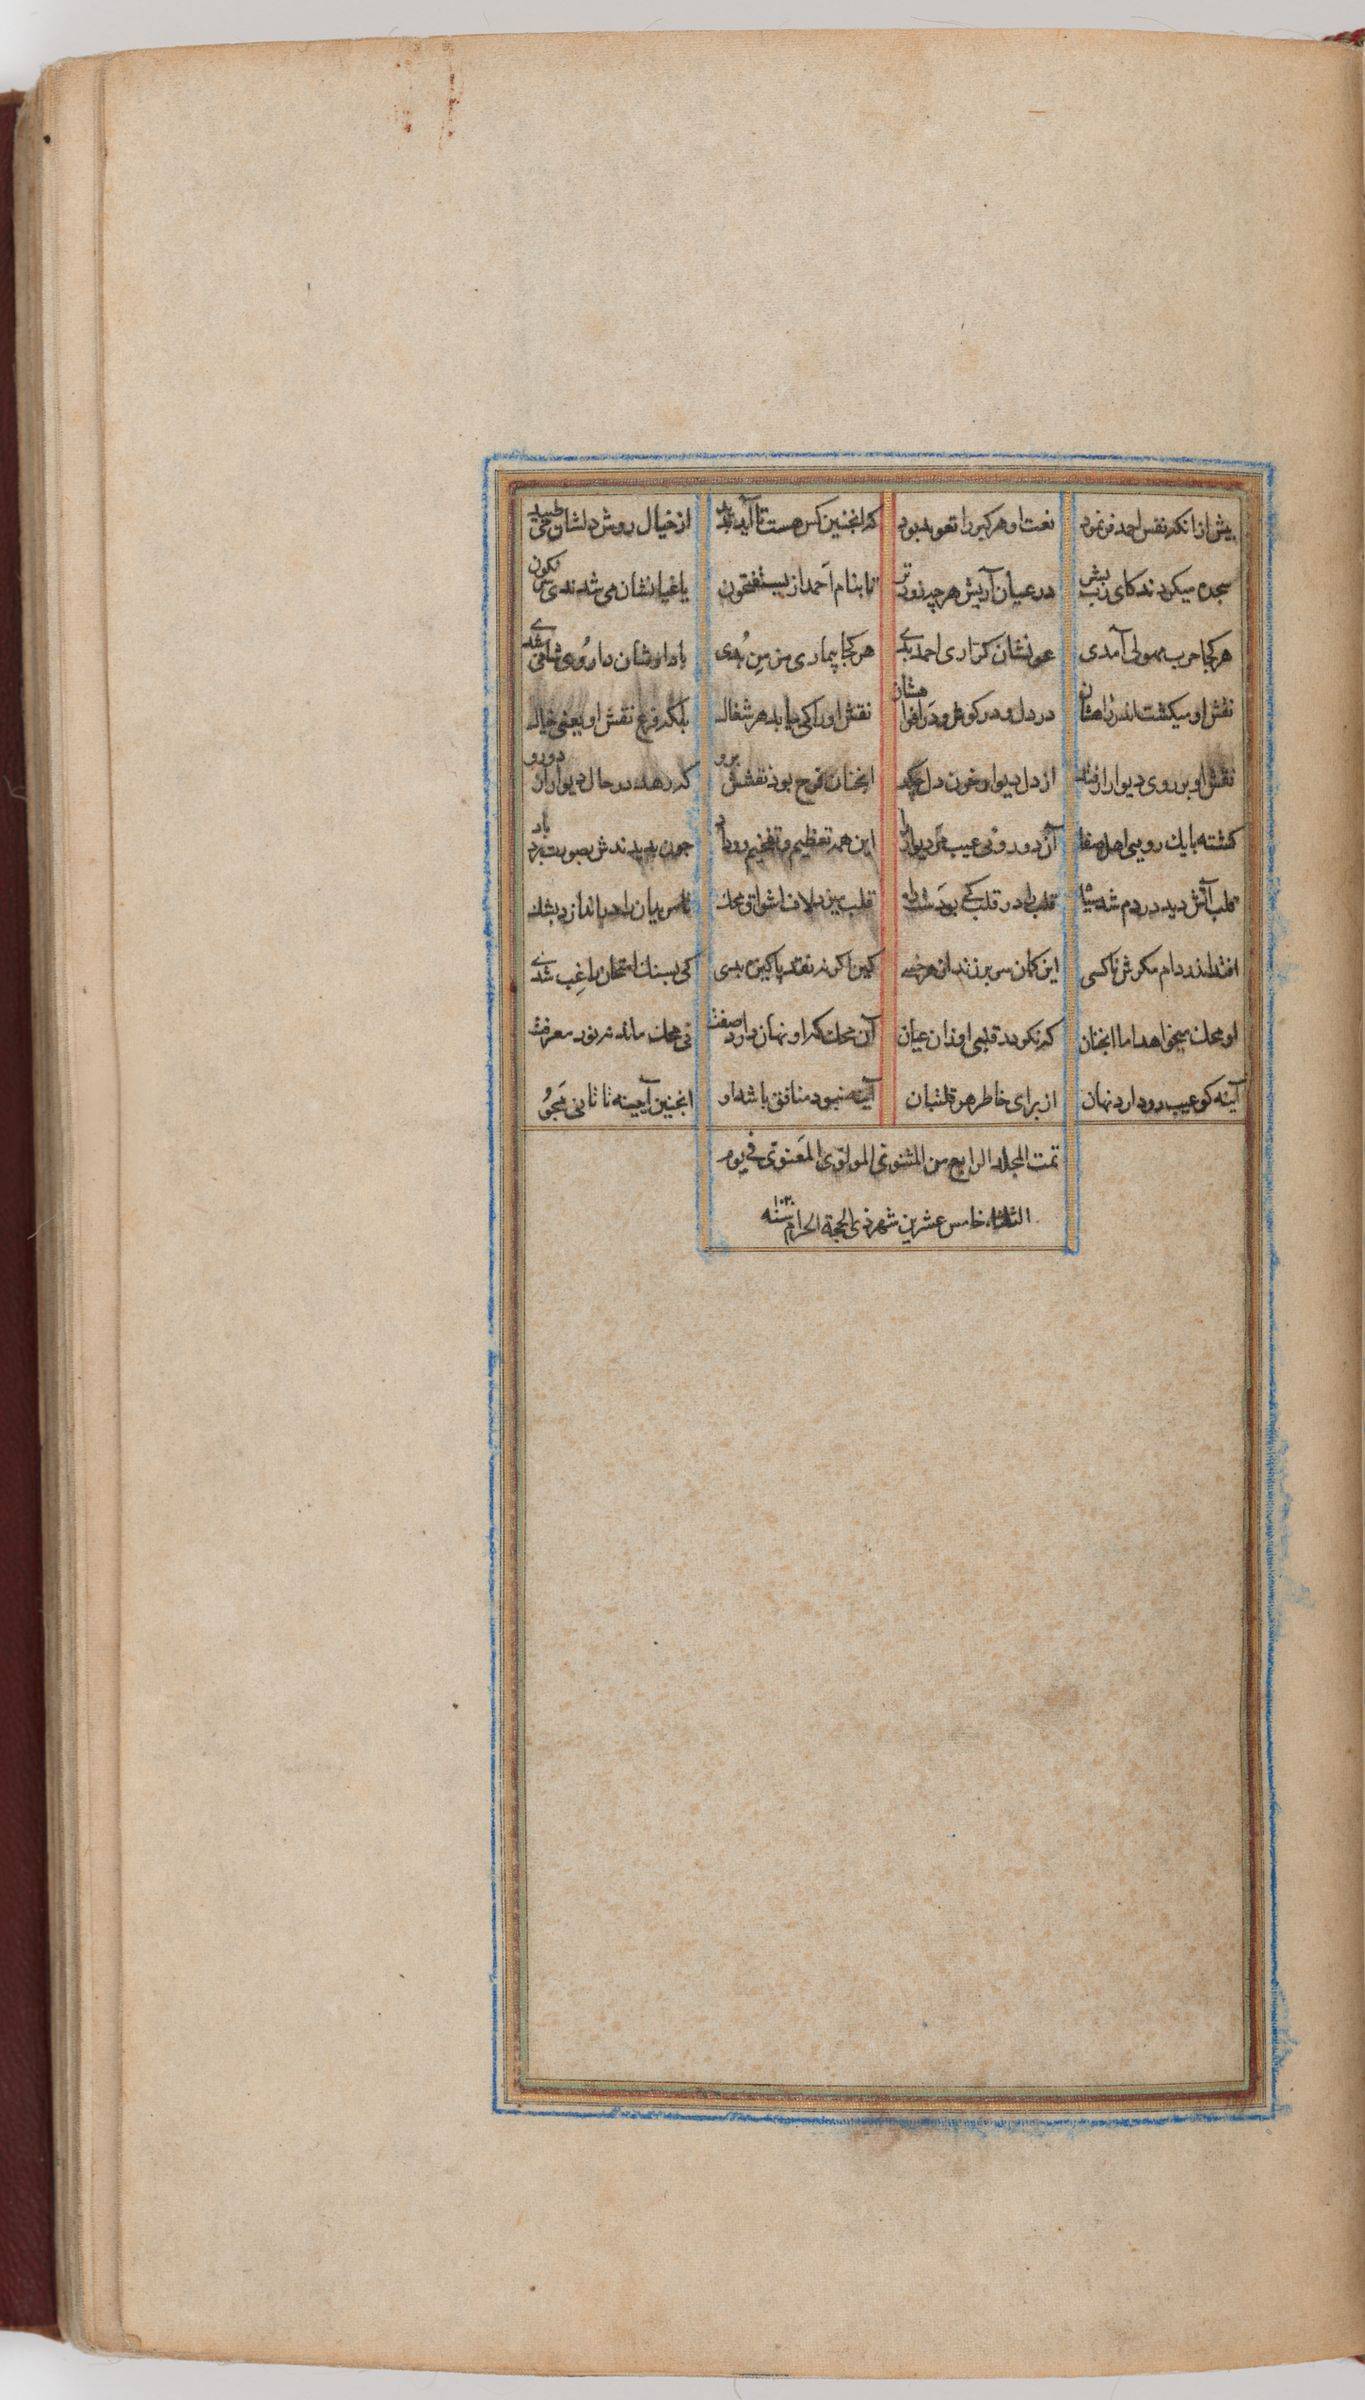 Colophon Of The Fourth Section (Colophon Recto; Blank Verso Of Folio 188), Folio From A Manuscript Of The Mathnavi Ma'navi By Maulana Jalal Al-Din Rumi